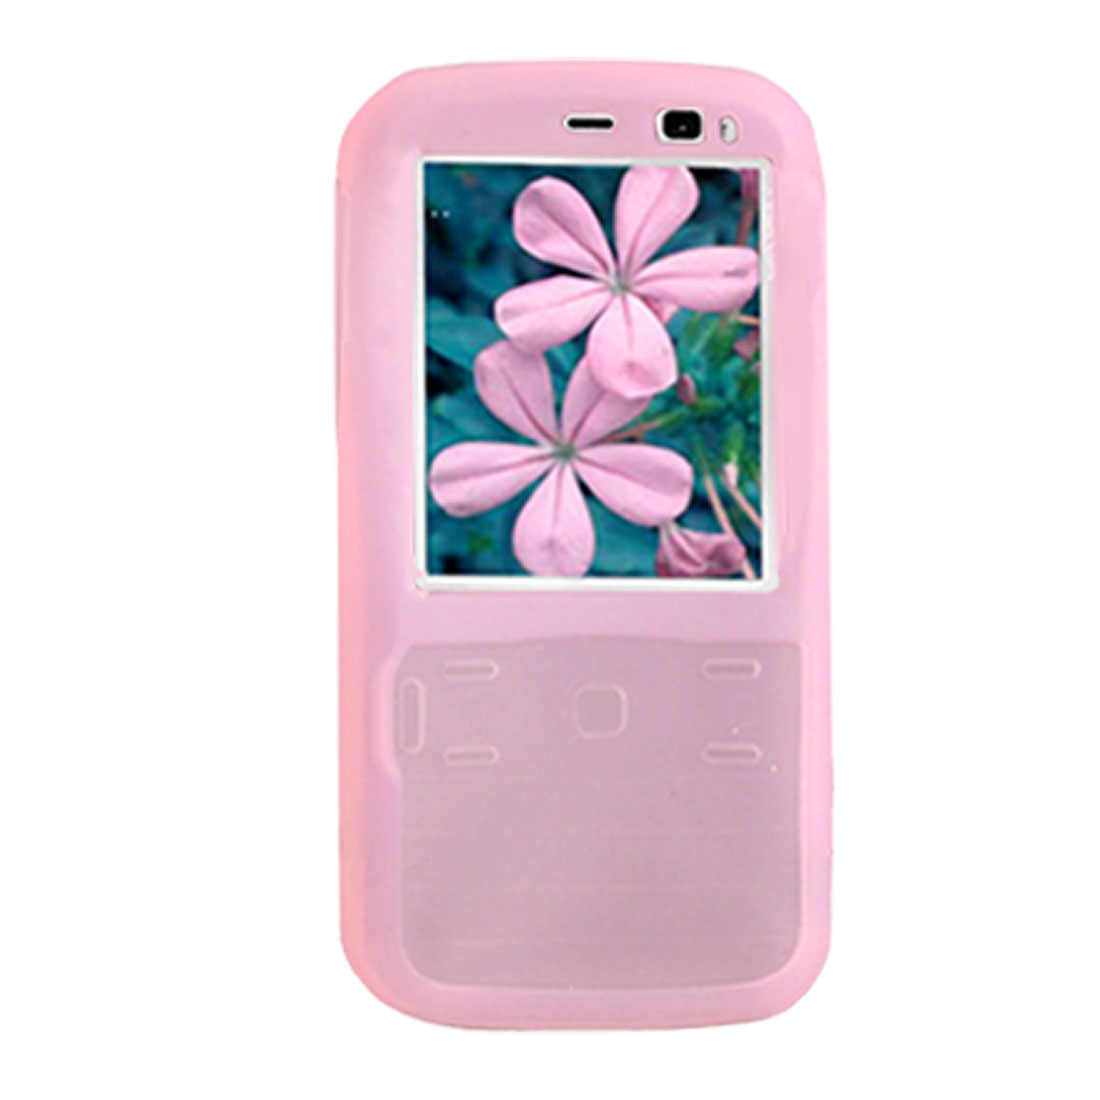 Pink Soft Silicone Case Cover Protector for Nokia N79